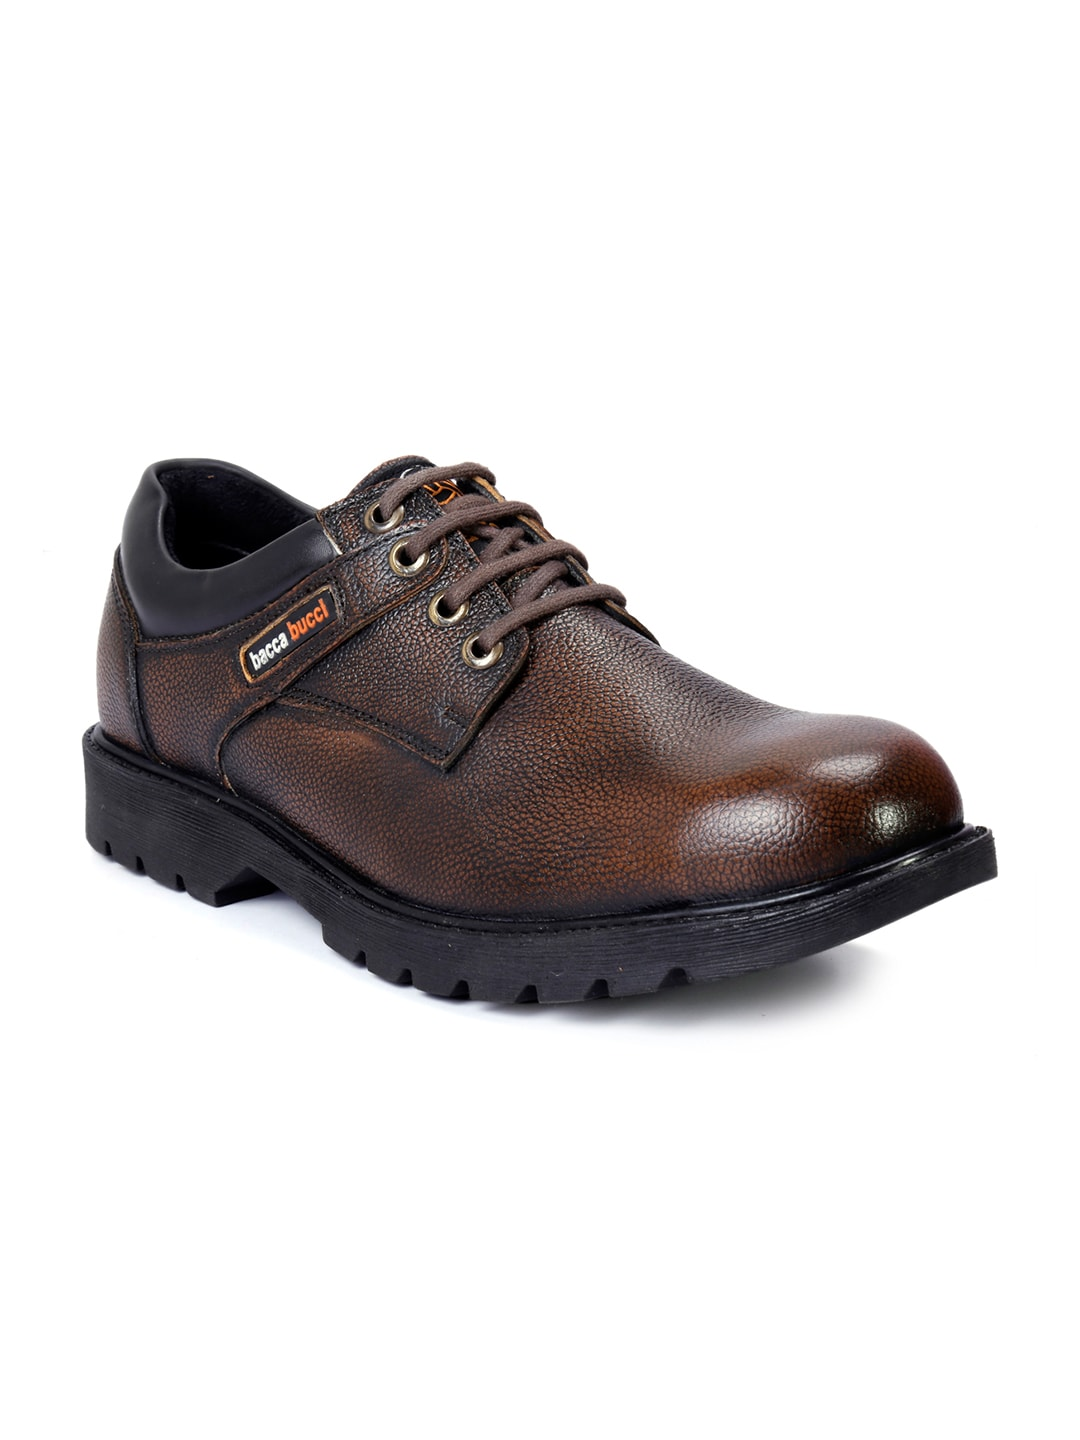 f0717dd06a3 Bacca Bucci Casual Shoes - Buy Bacca Bucci Casual Shoes online in India